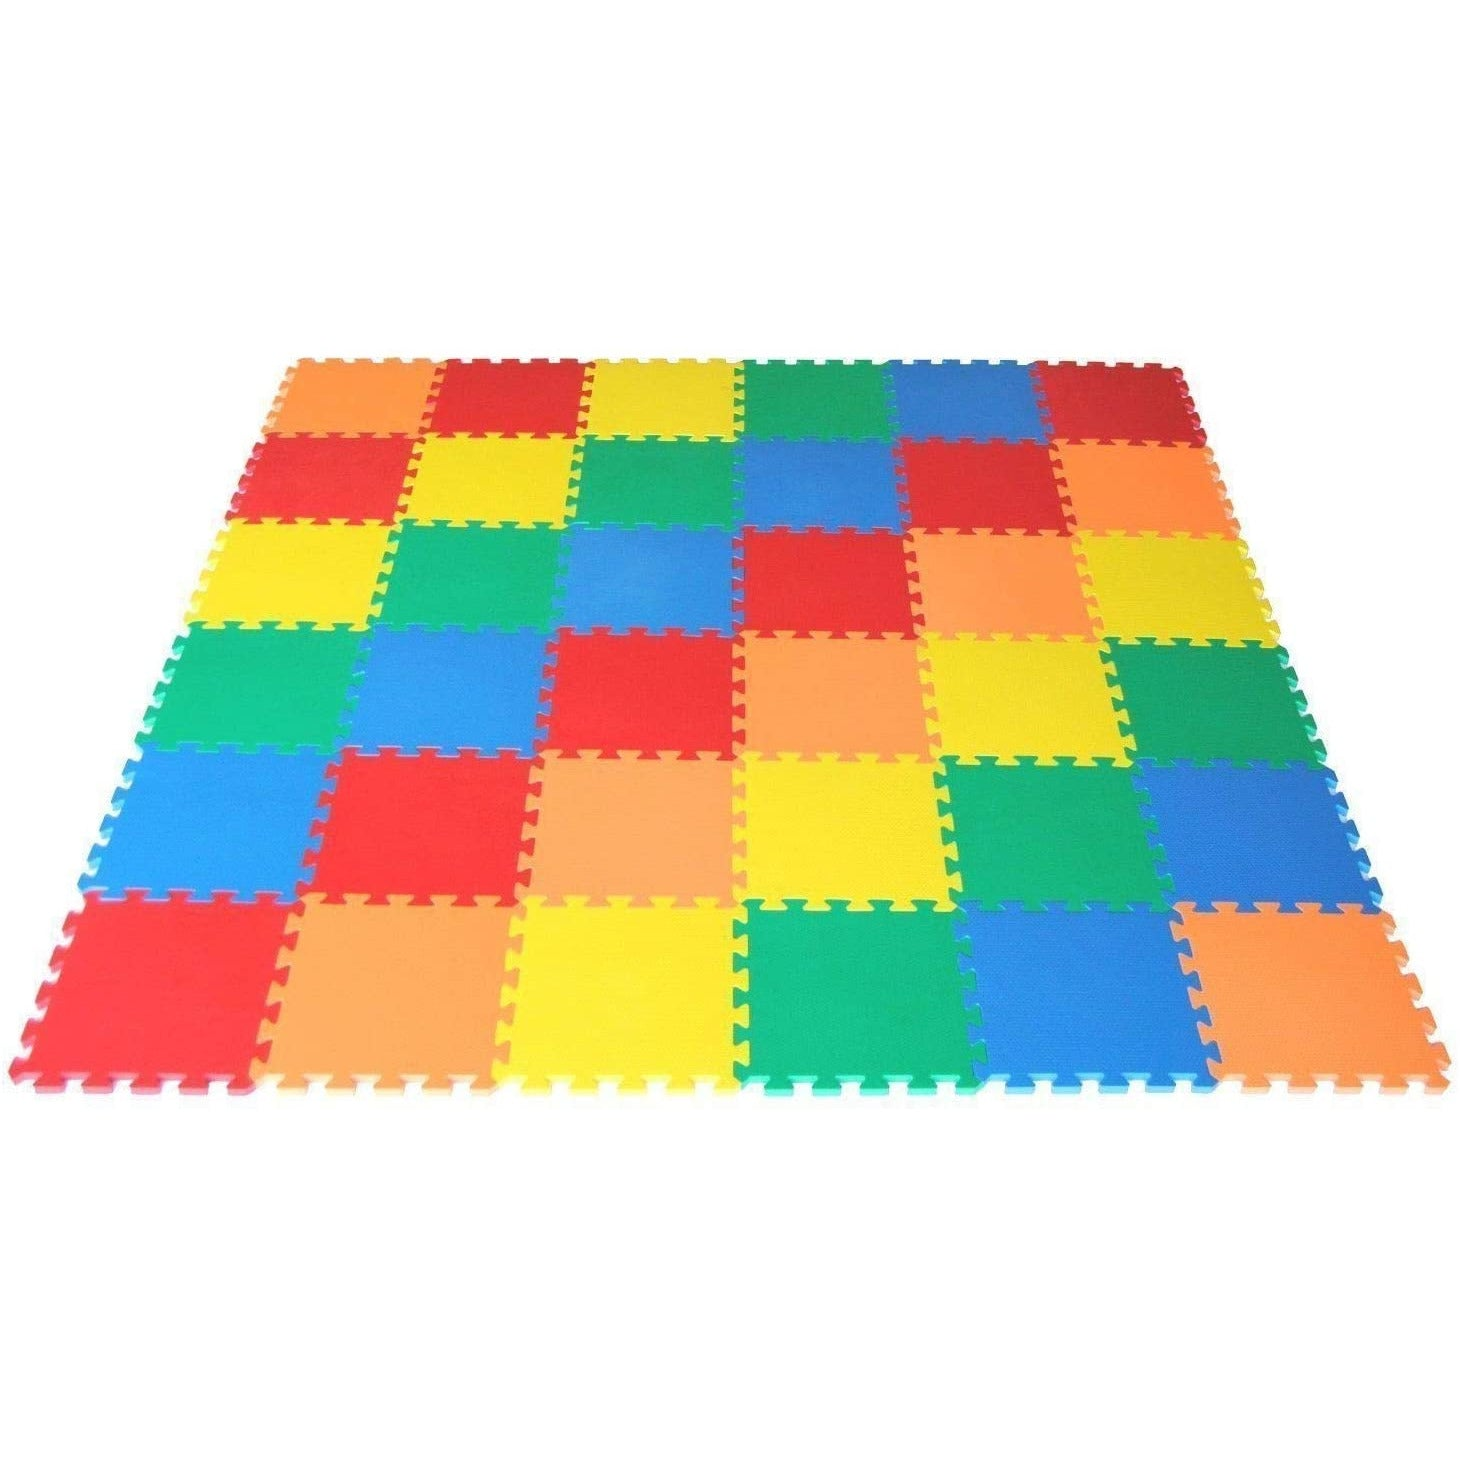 VLFit Multi-Colour Outdoor/Indoor Protective Kids Soft Floor Mats Interlocking - Reversible EVA Floor Matting suitable for Gym, Baby Play Area, Exercise, Yoga etc (10 Mats)